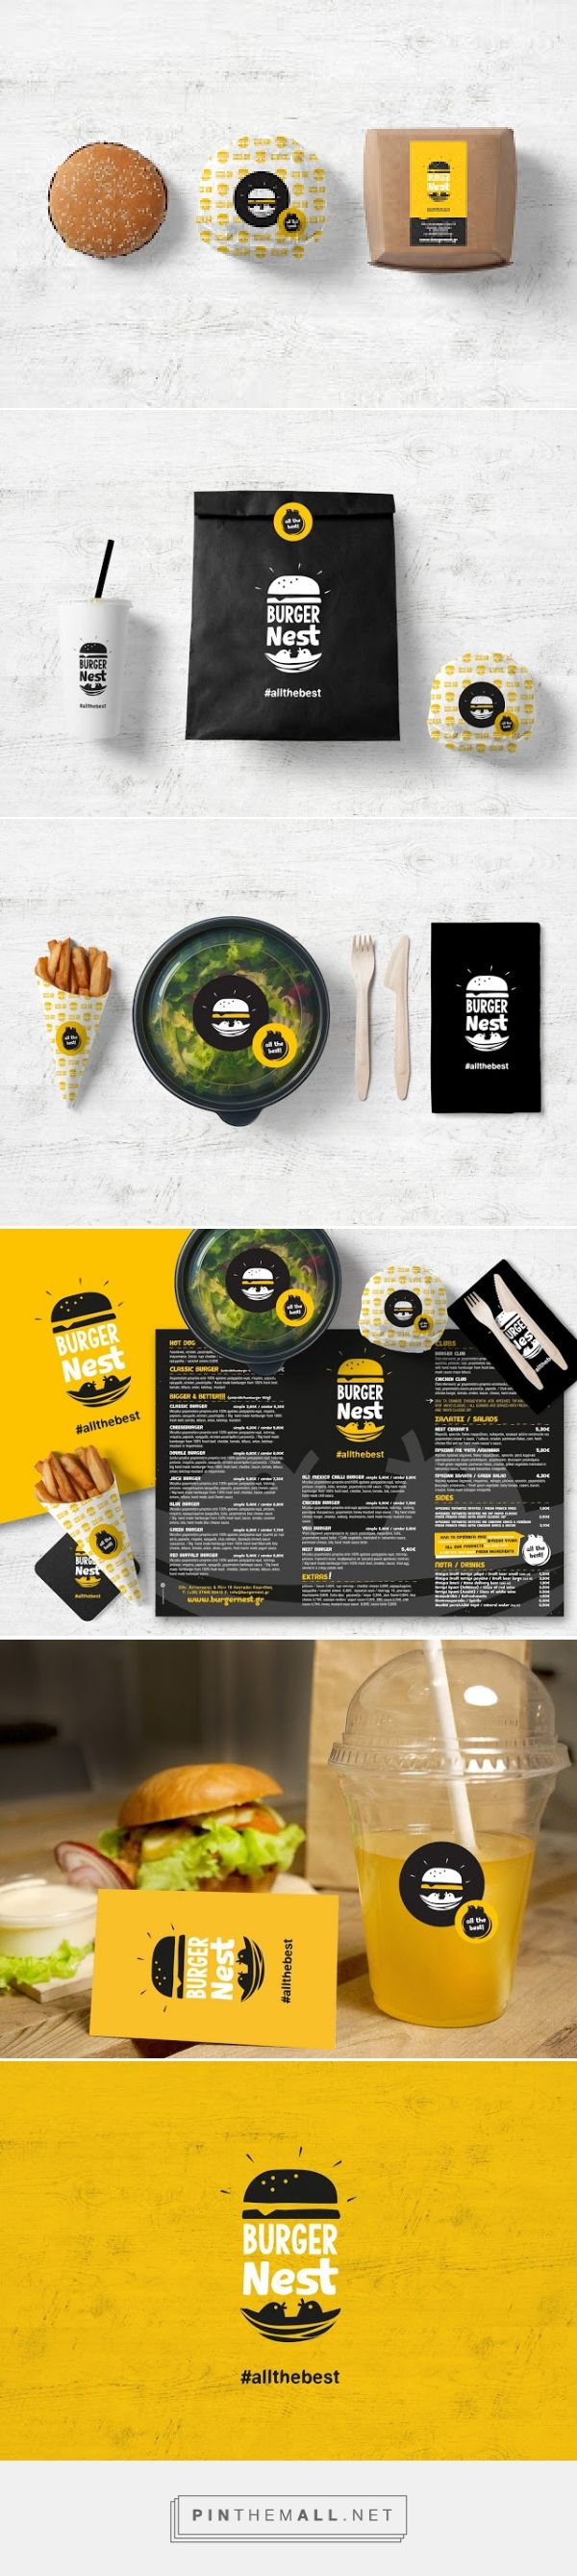 Burger Nest         on          Packaging of the World - Creative Package Design Gallery - created via http://pinthemall.net